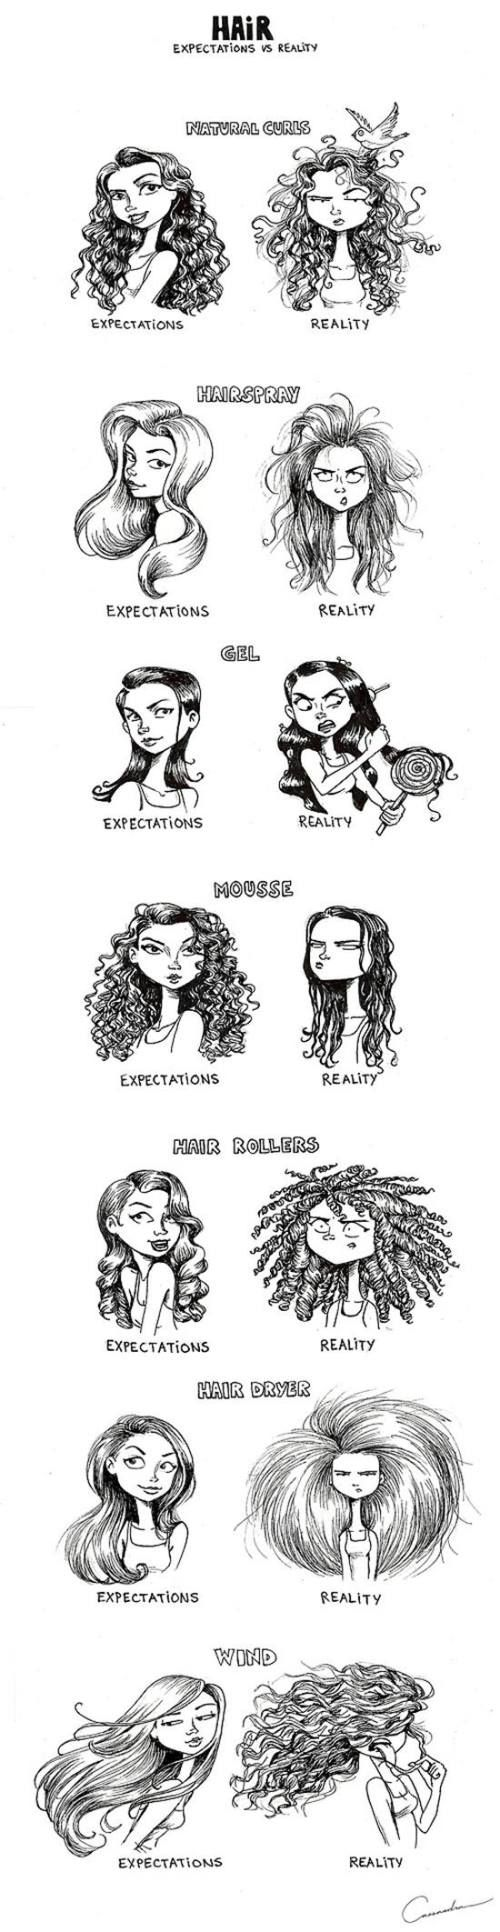 hairstyles that everyone can relate to truths expectation vs